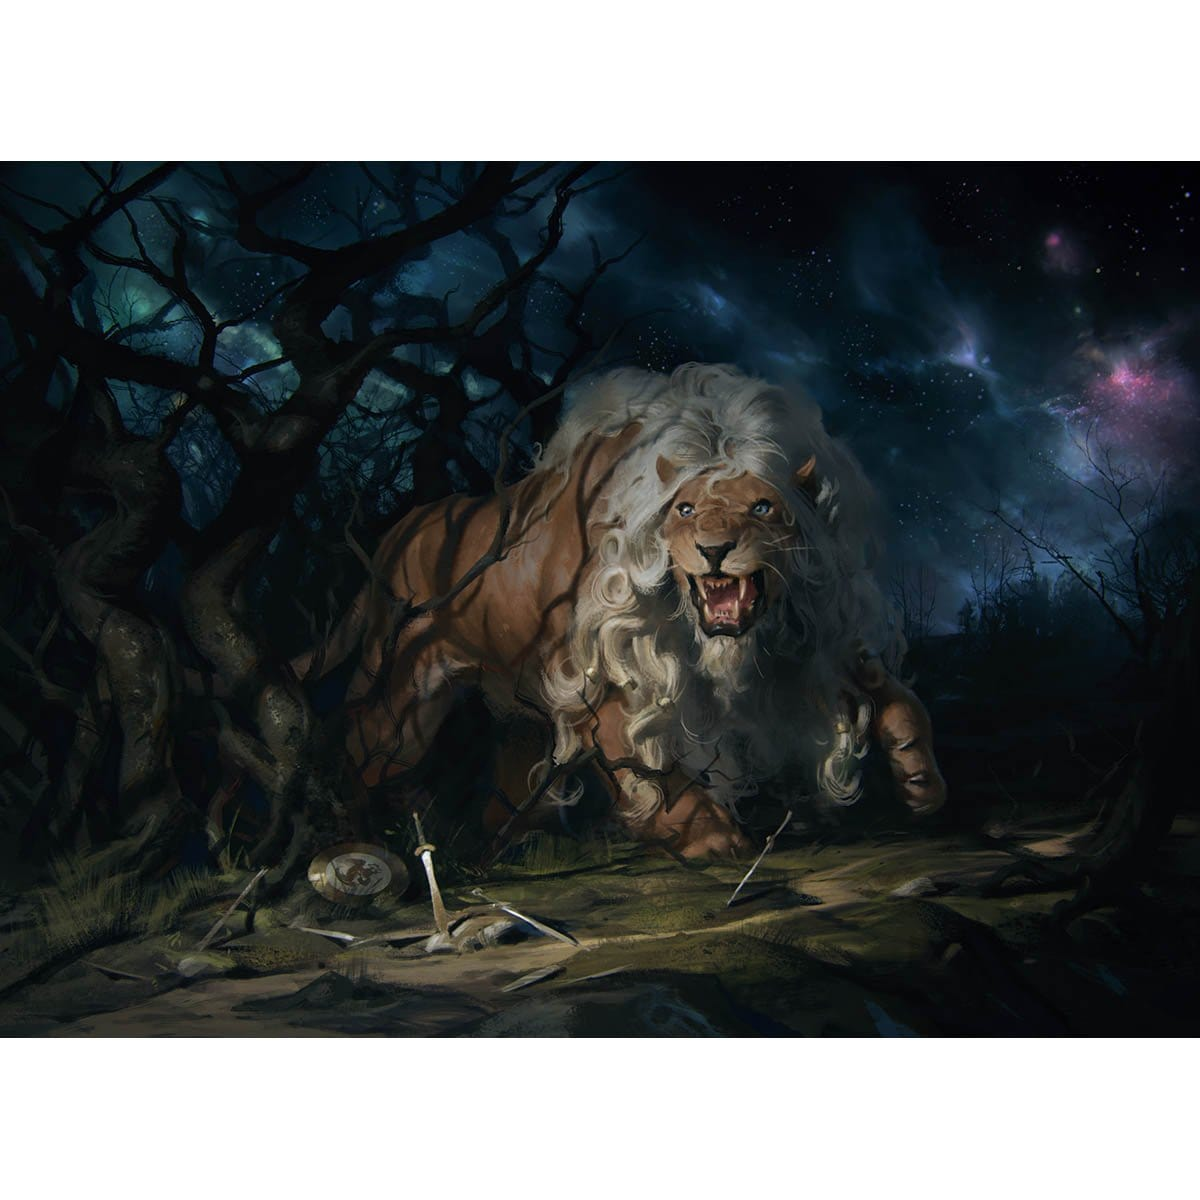 Fleecemane Lion Print - Print - Original Magic Art - Accessories for Magic the Gathering and other card games